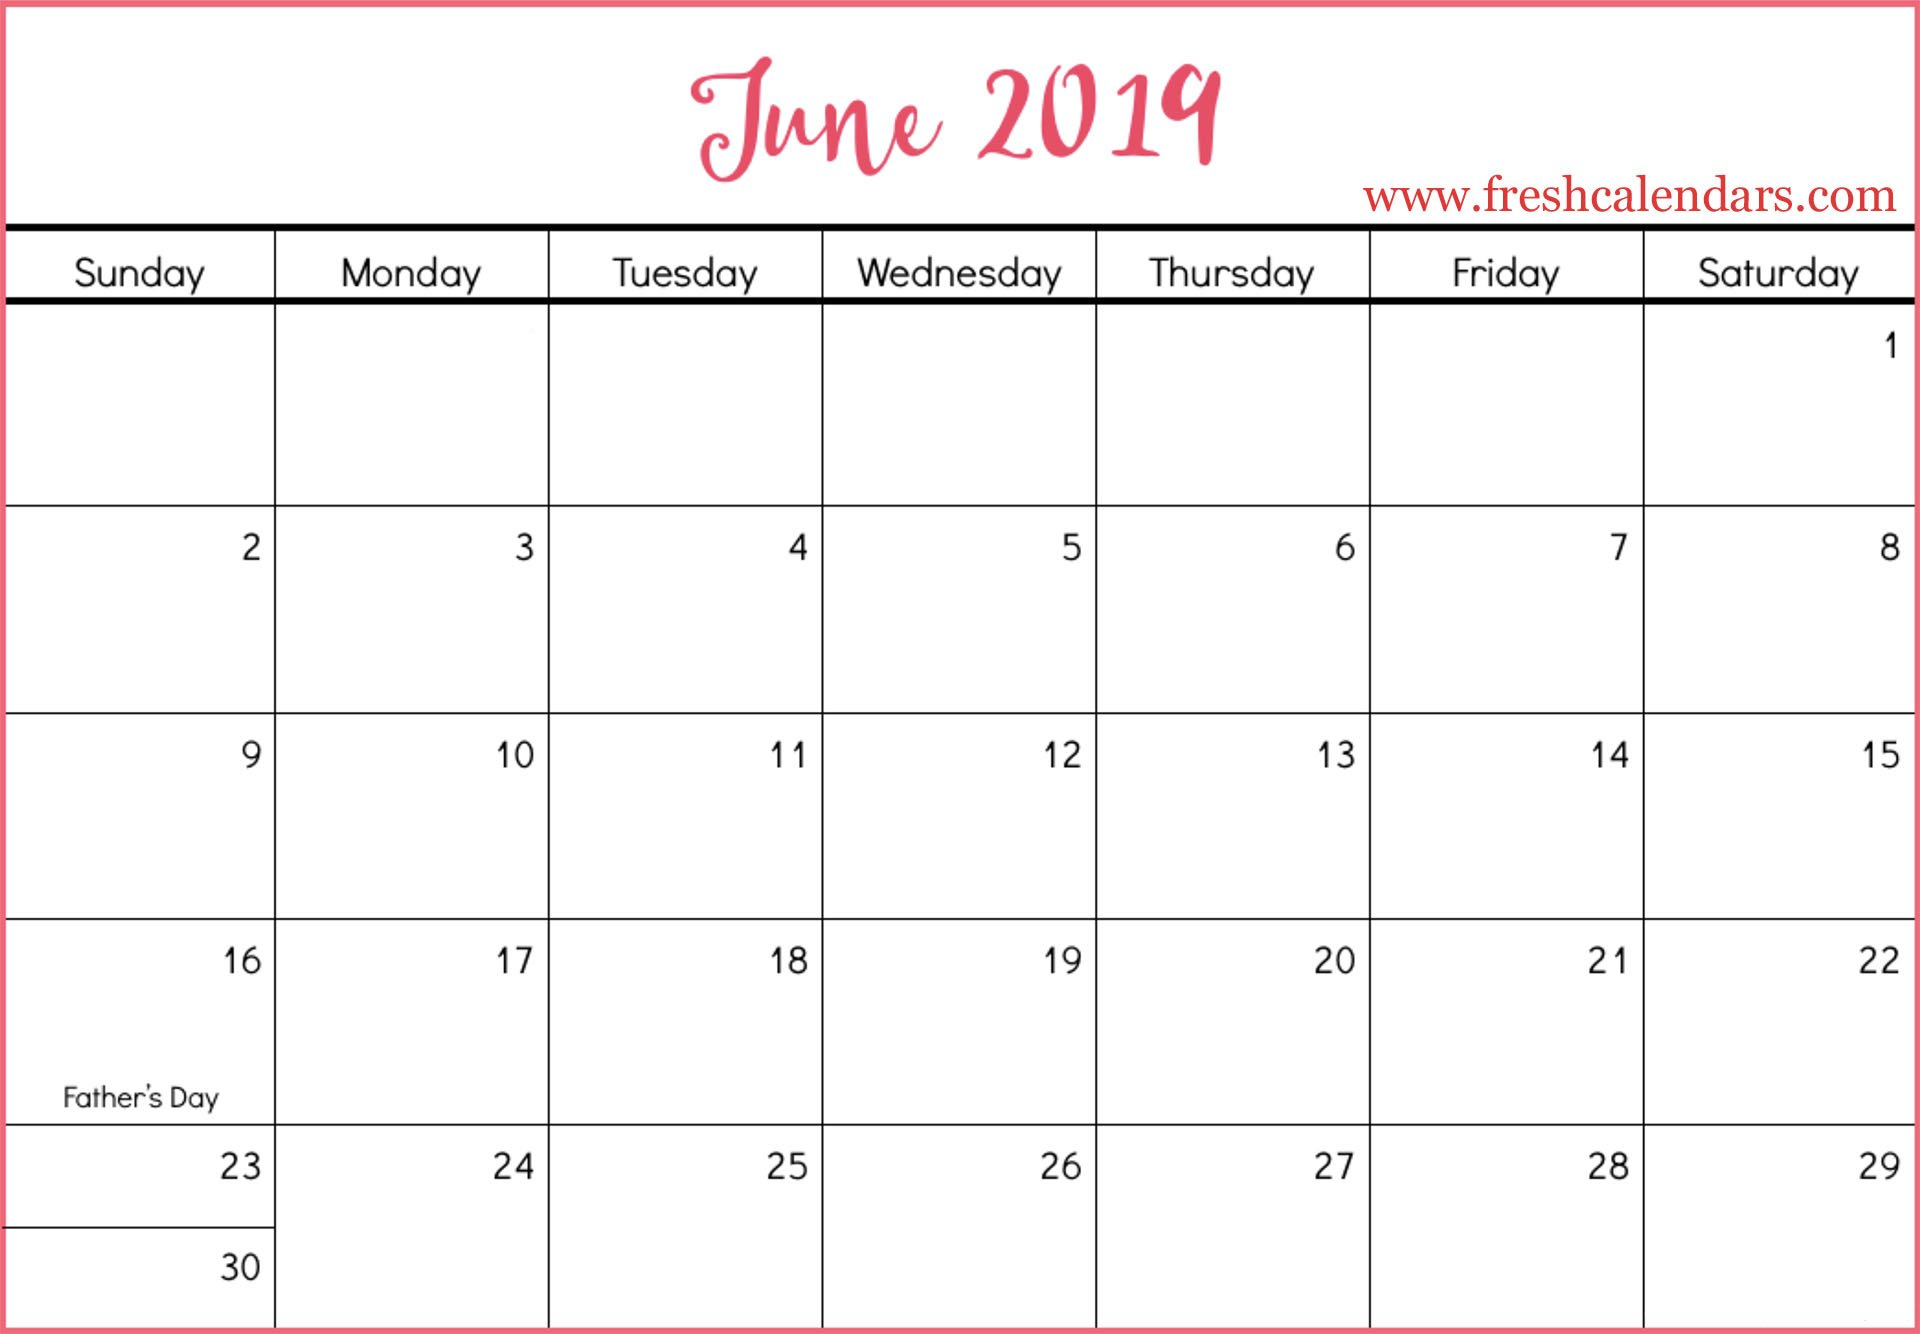 June 2019 Calendar Printable - Fresh Calendars Calendar Of 2019 June